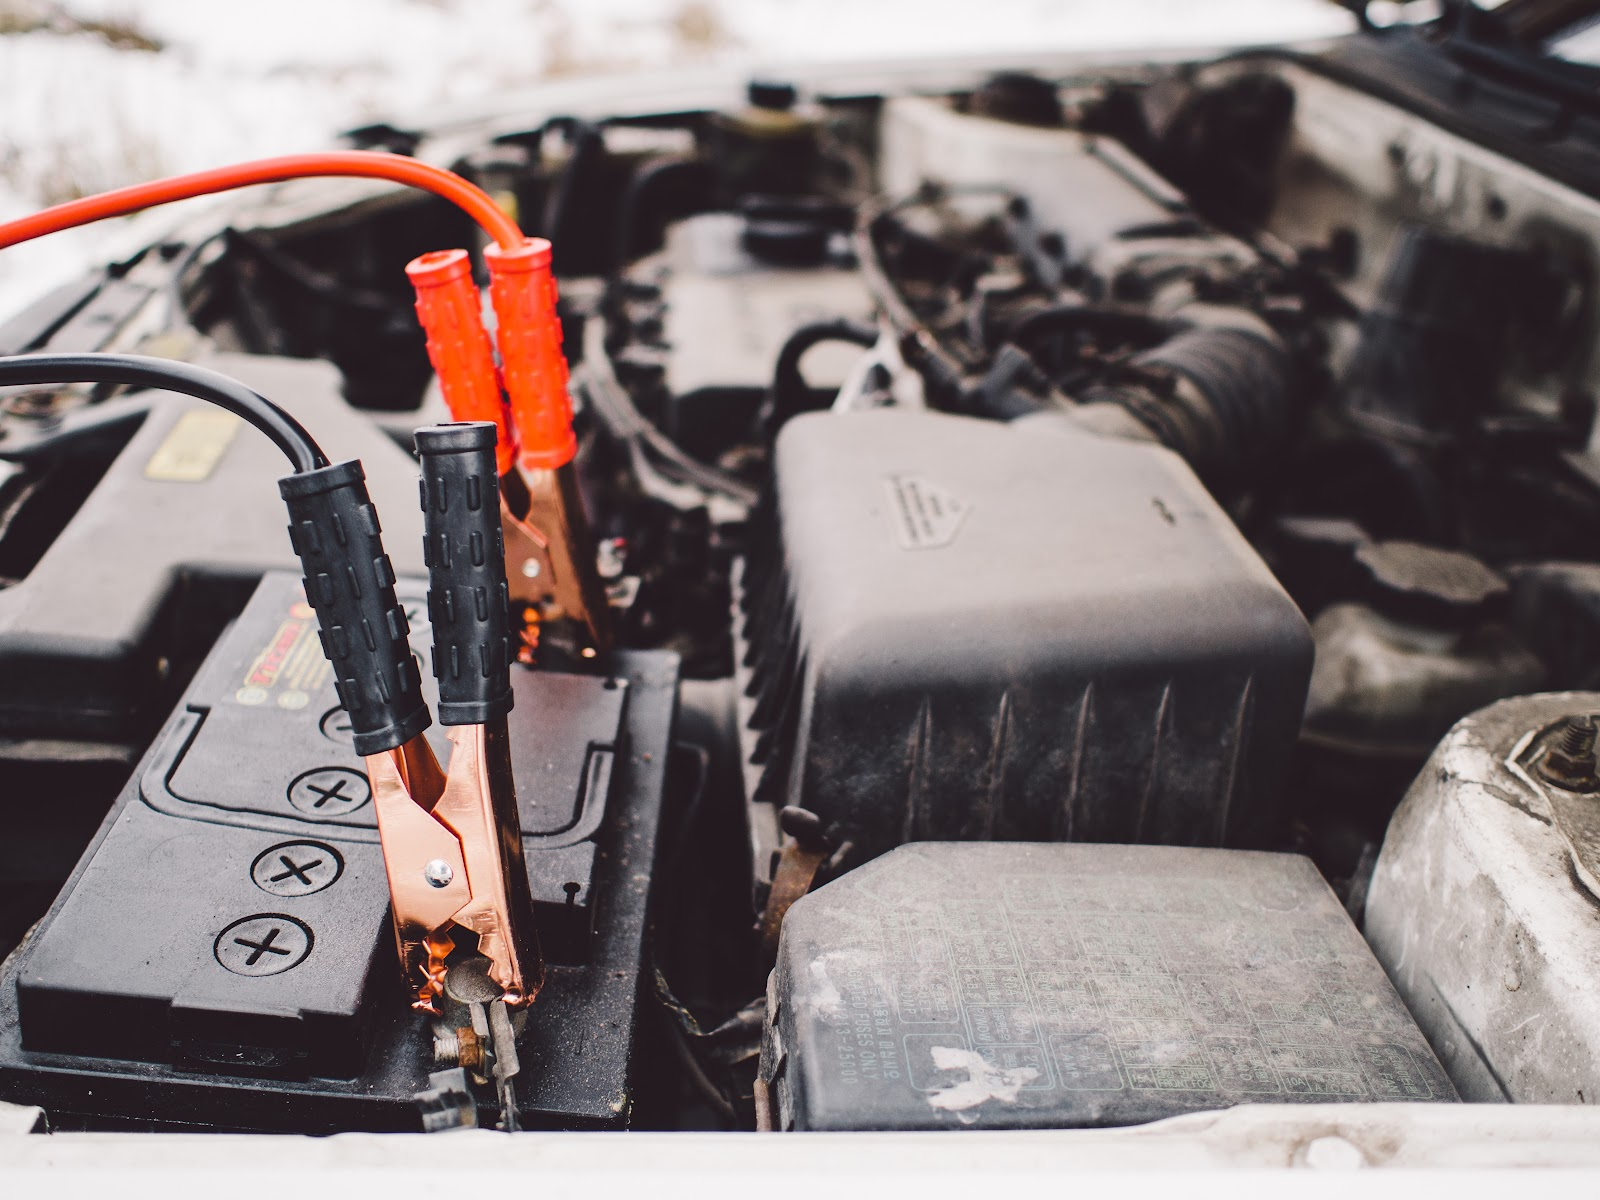 How To Jump Start A Car Blog Urgently First Connect The Black Wire Of This Cable Second Lead Next With Live Battery Will Immediately Charging Dead In Some Cases Be Able